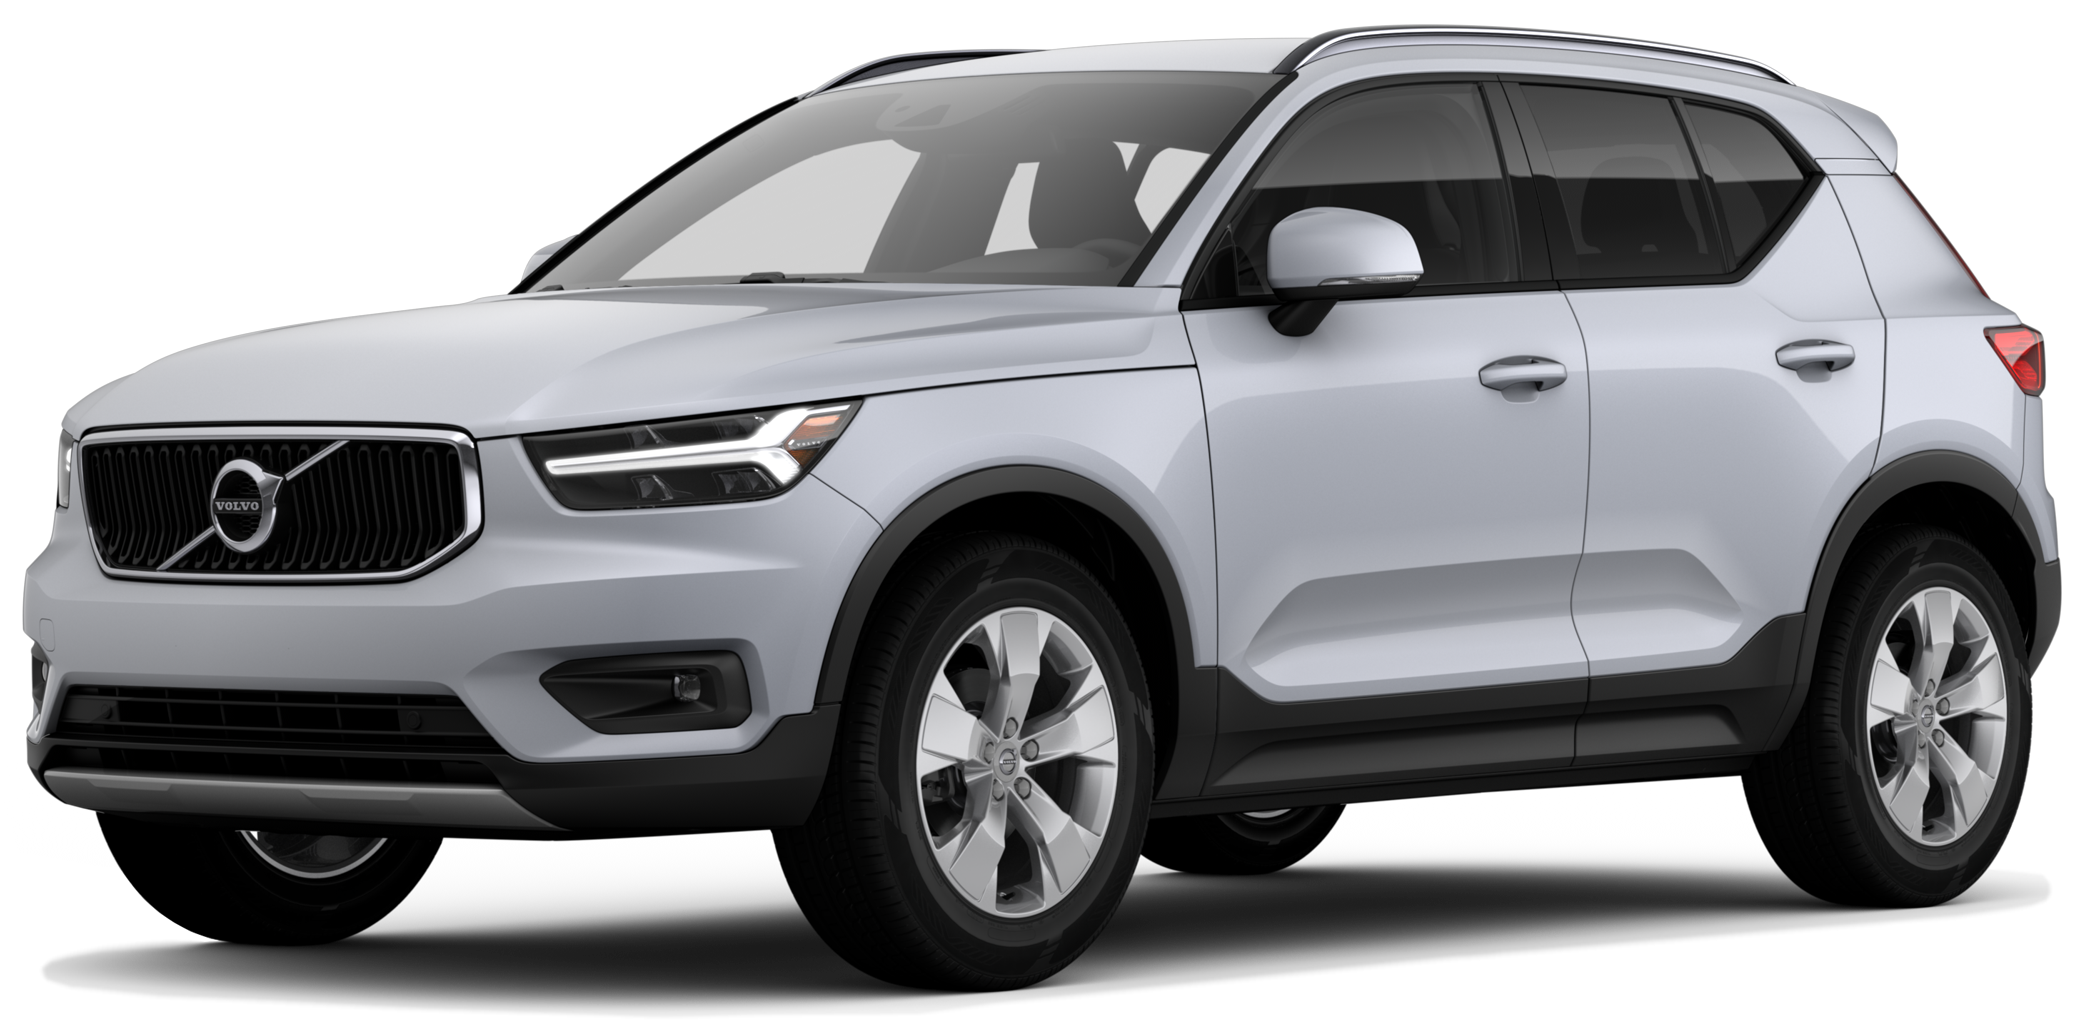 2021 Volvo XC40 Incentives, Specials & Offers in ...